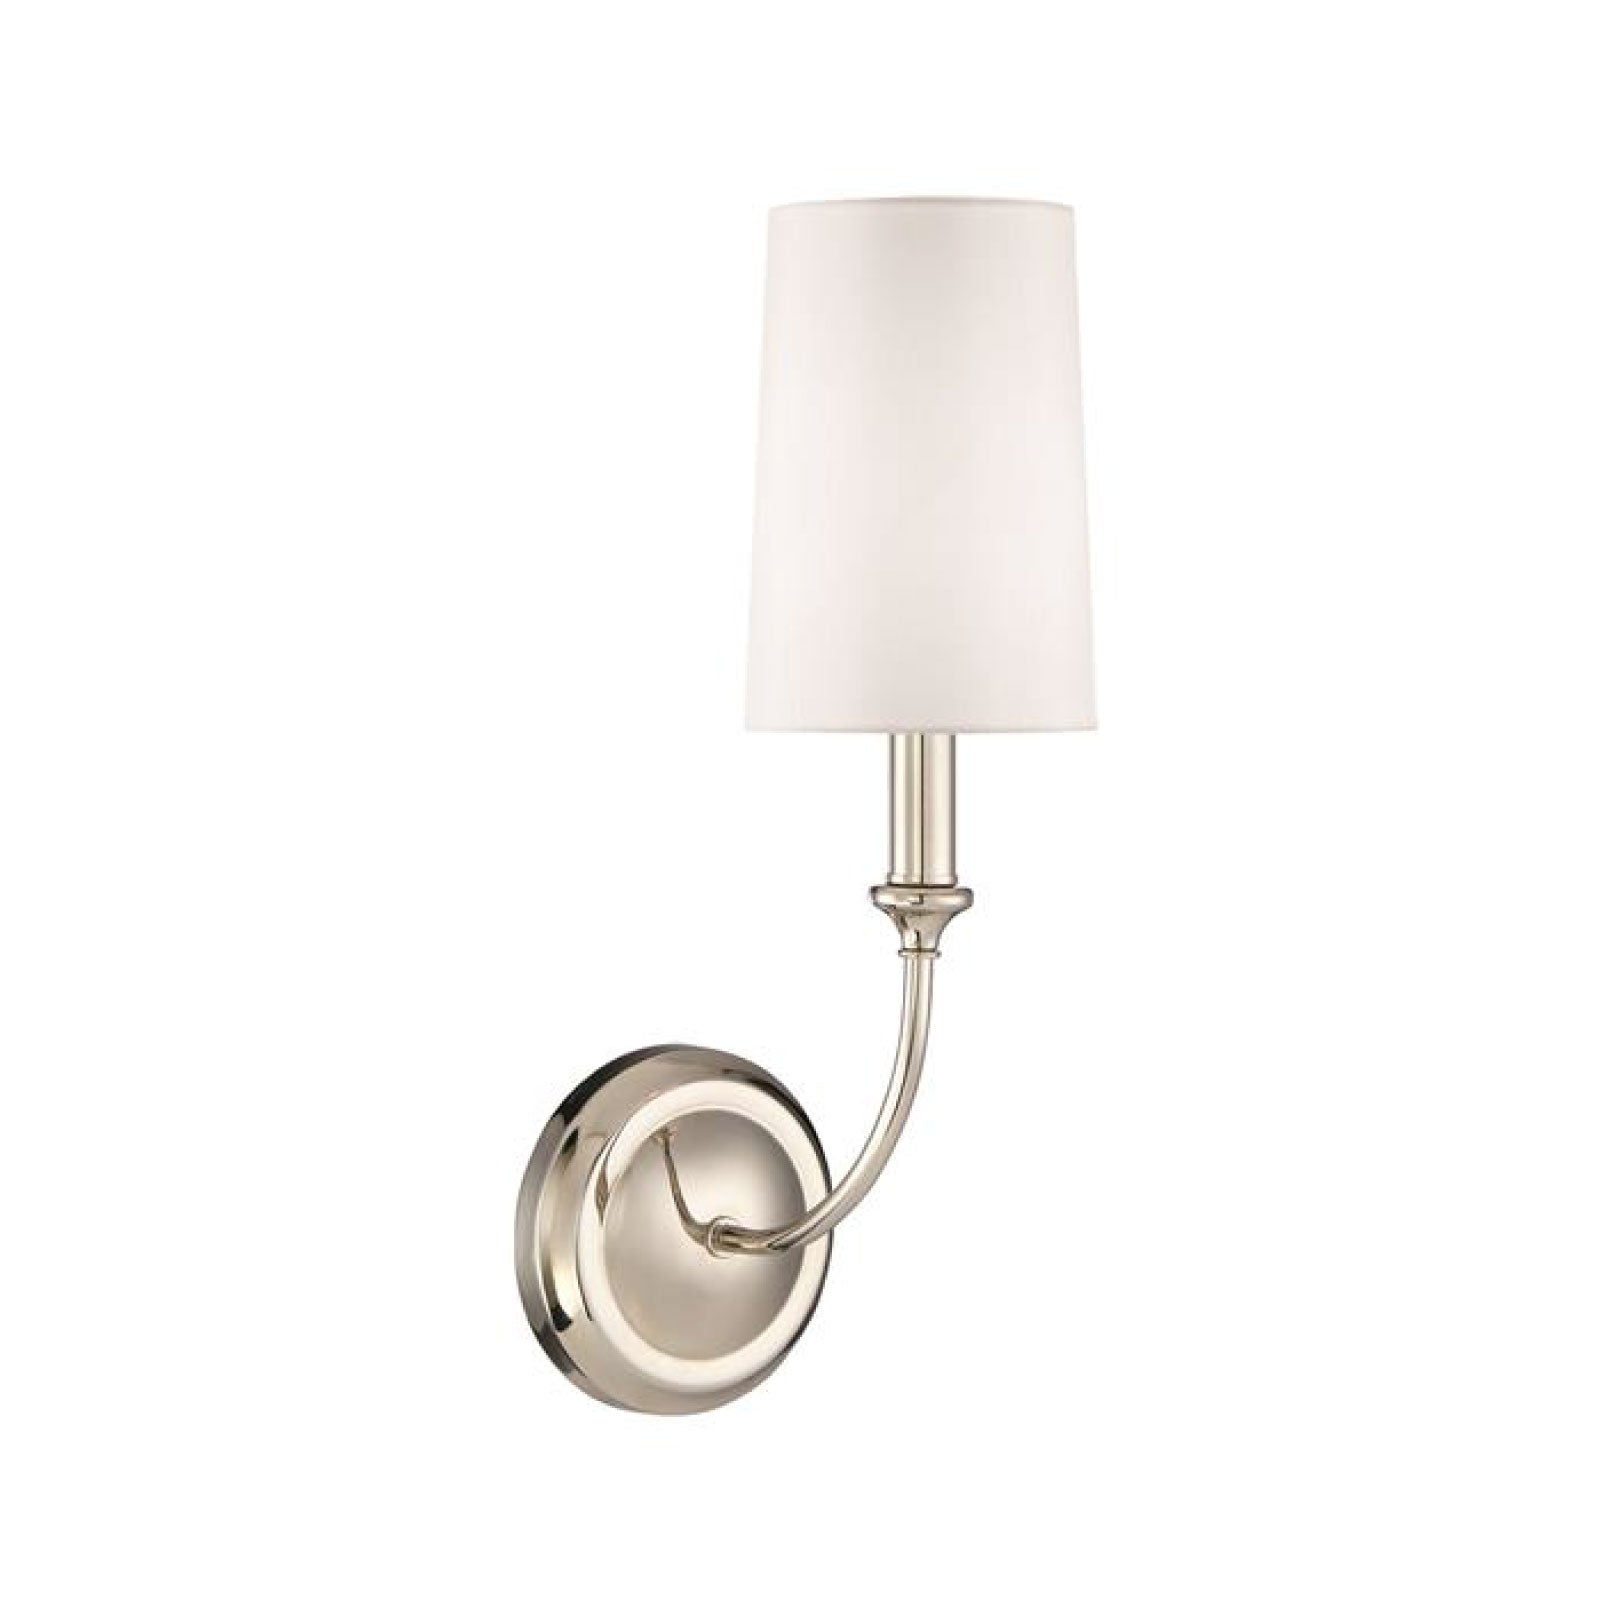 Abrams Sconce in Nickel